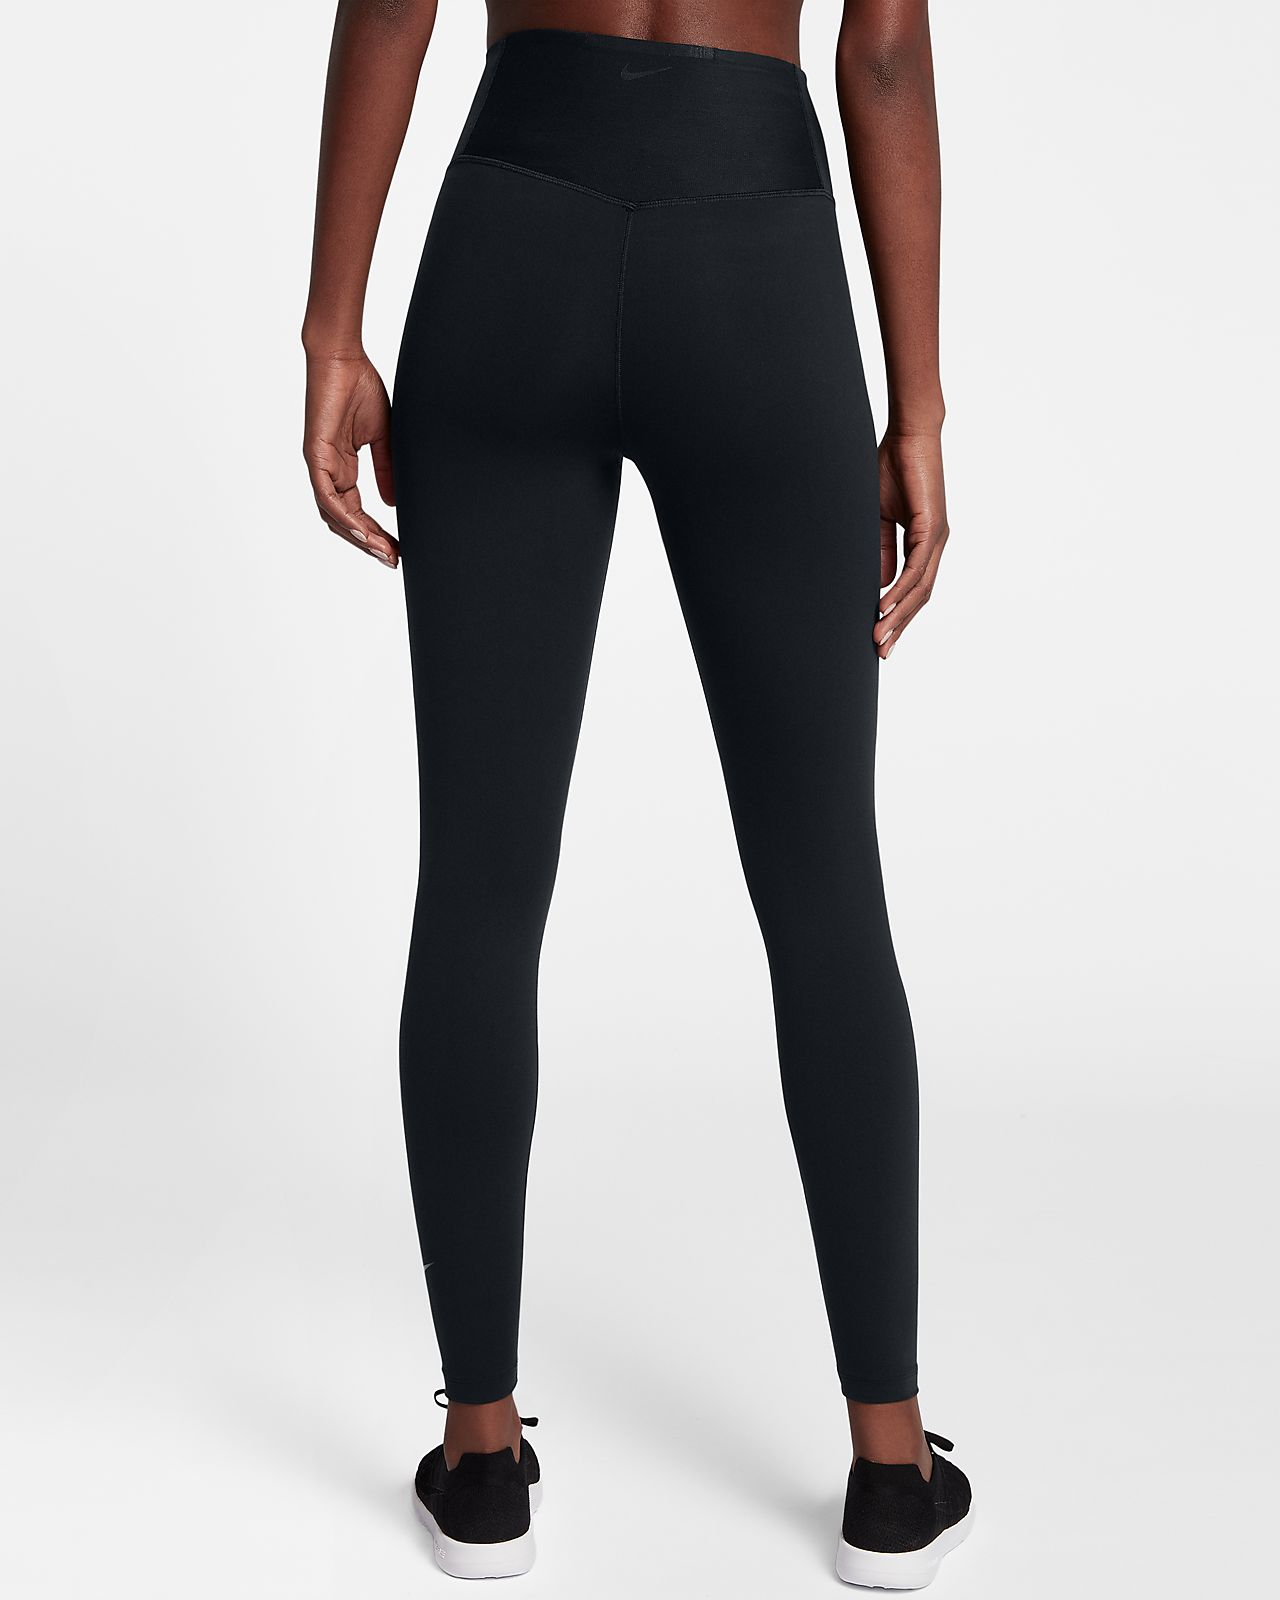 1705ee38a8965 Nike Sculpt Lux Women's High-Waist Training Tights. Nike.com CA